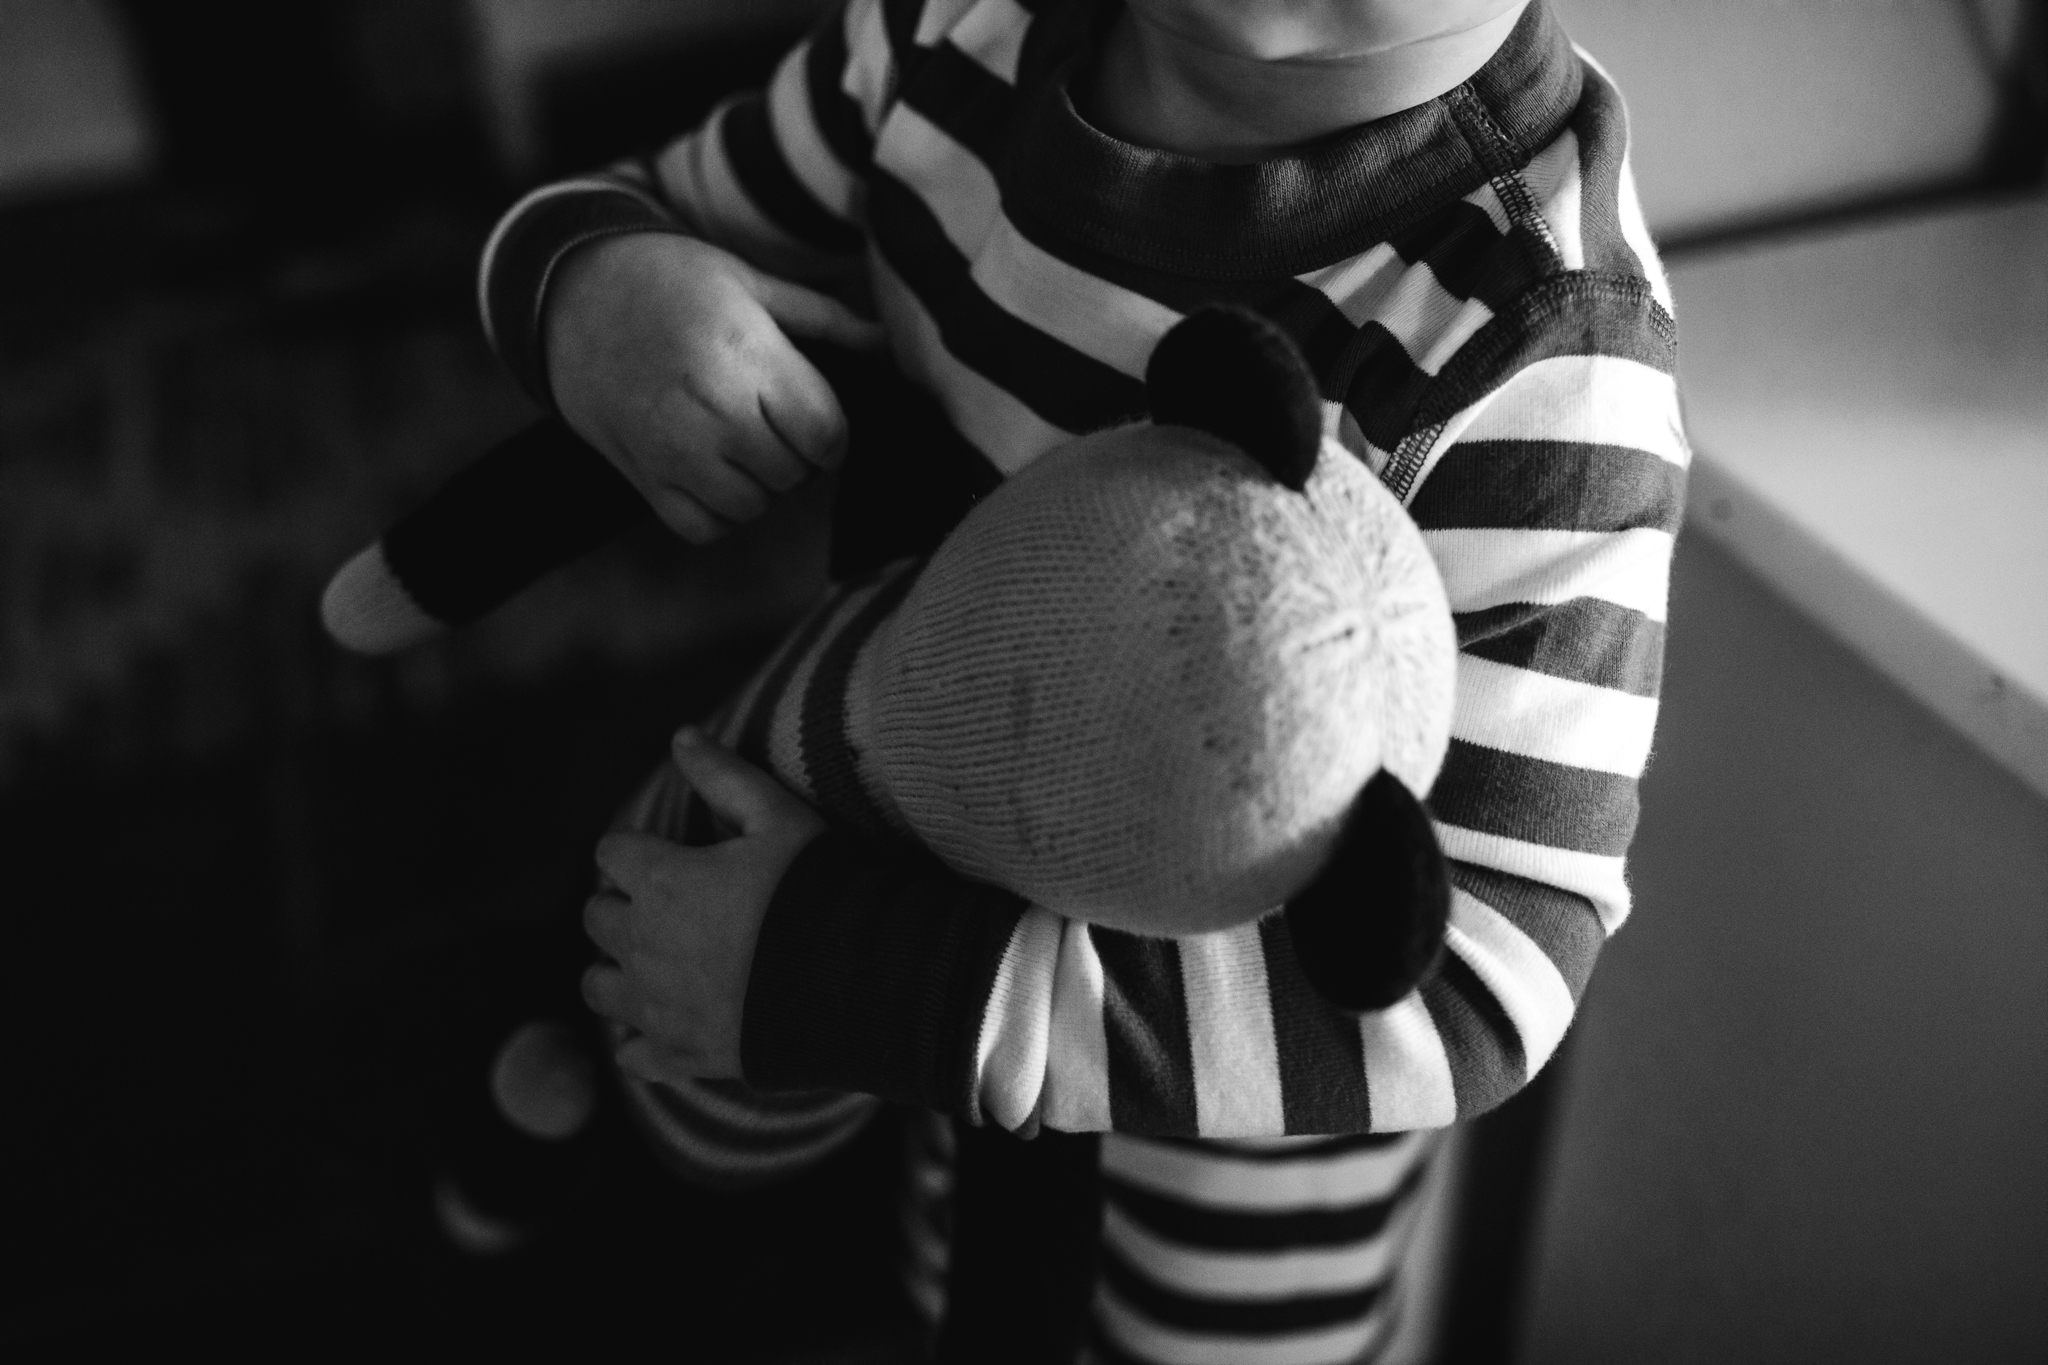 memphis-family-photographer-in-home-thewarmtharoundyou (149 of 140).jpg